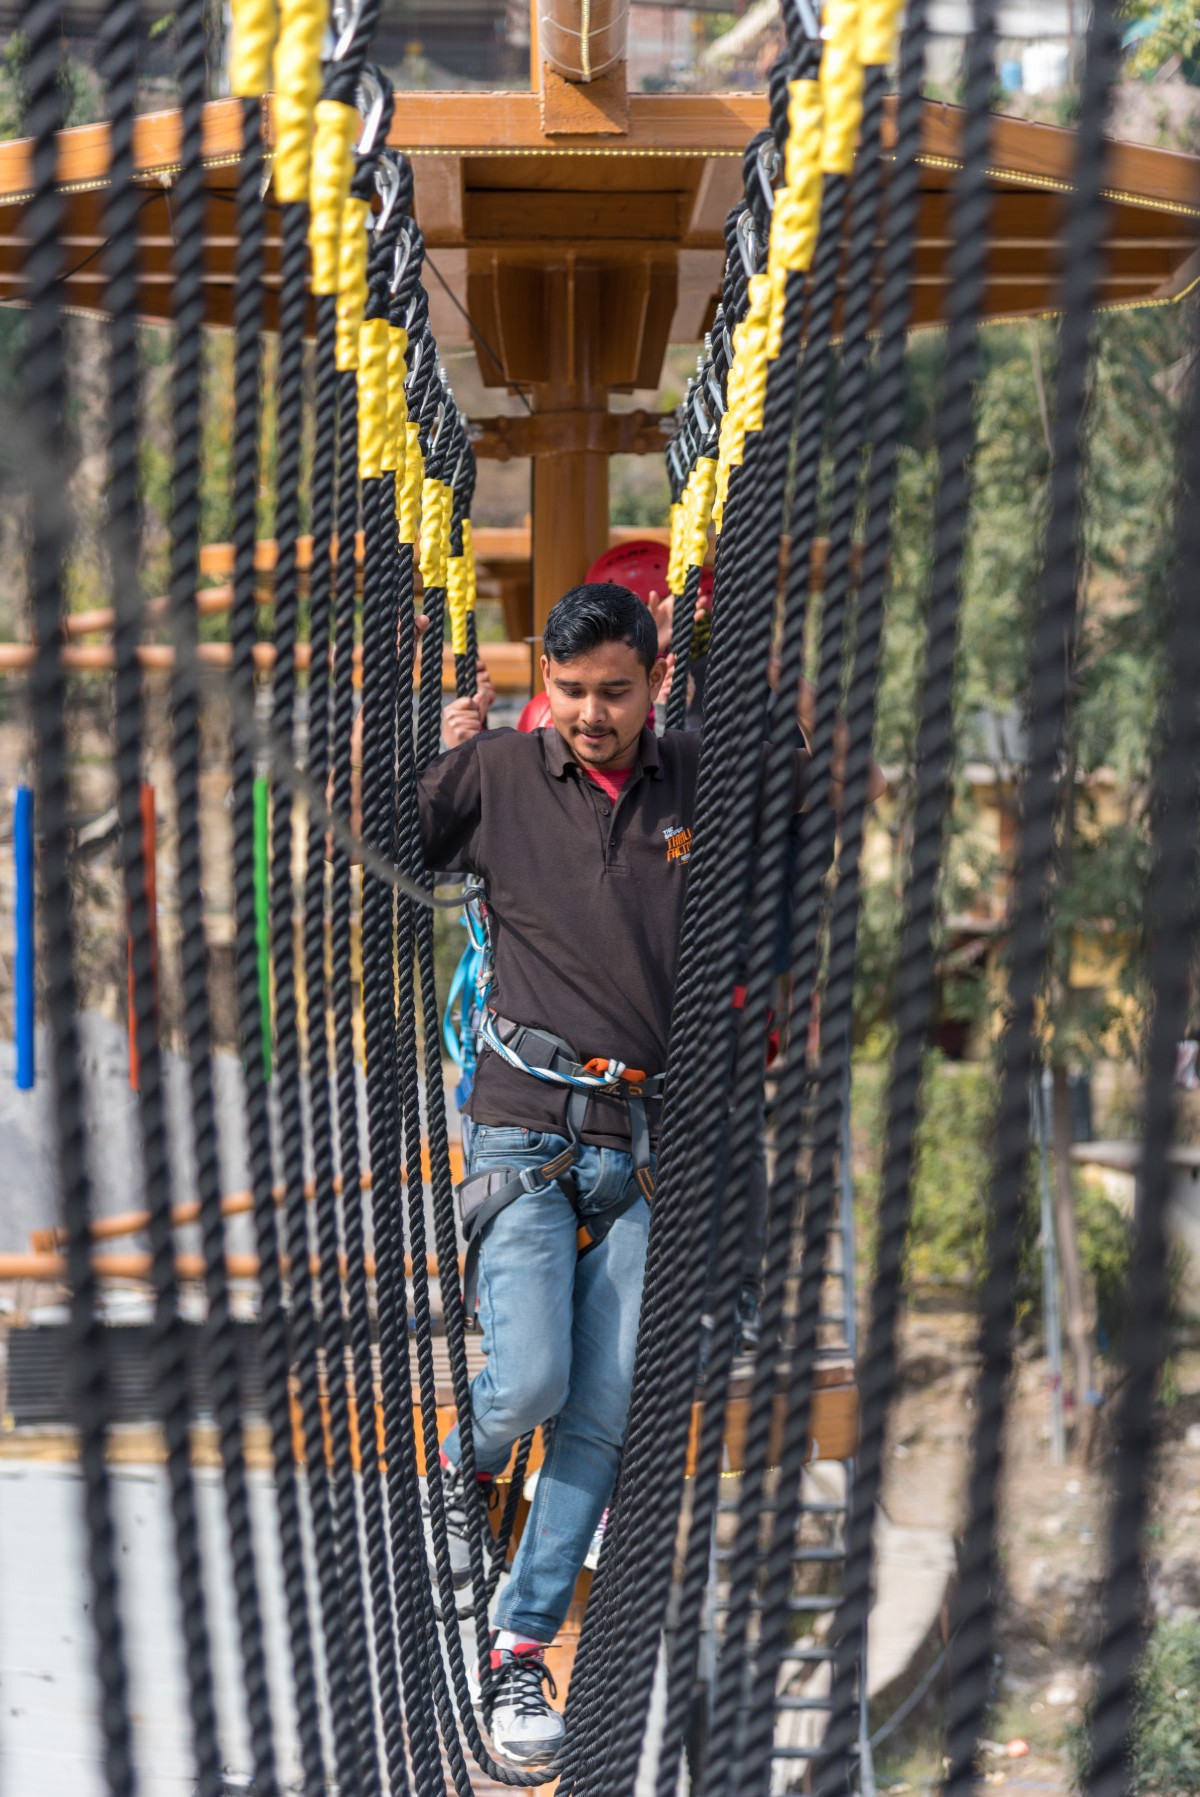 http://www.thegreatnext.com/Reverse Bungee High Low Ropes Course Rishikesh Uttarakhand Thrill Factory Park Adventure Travel The Great Next